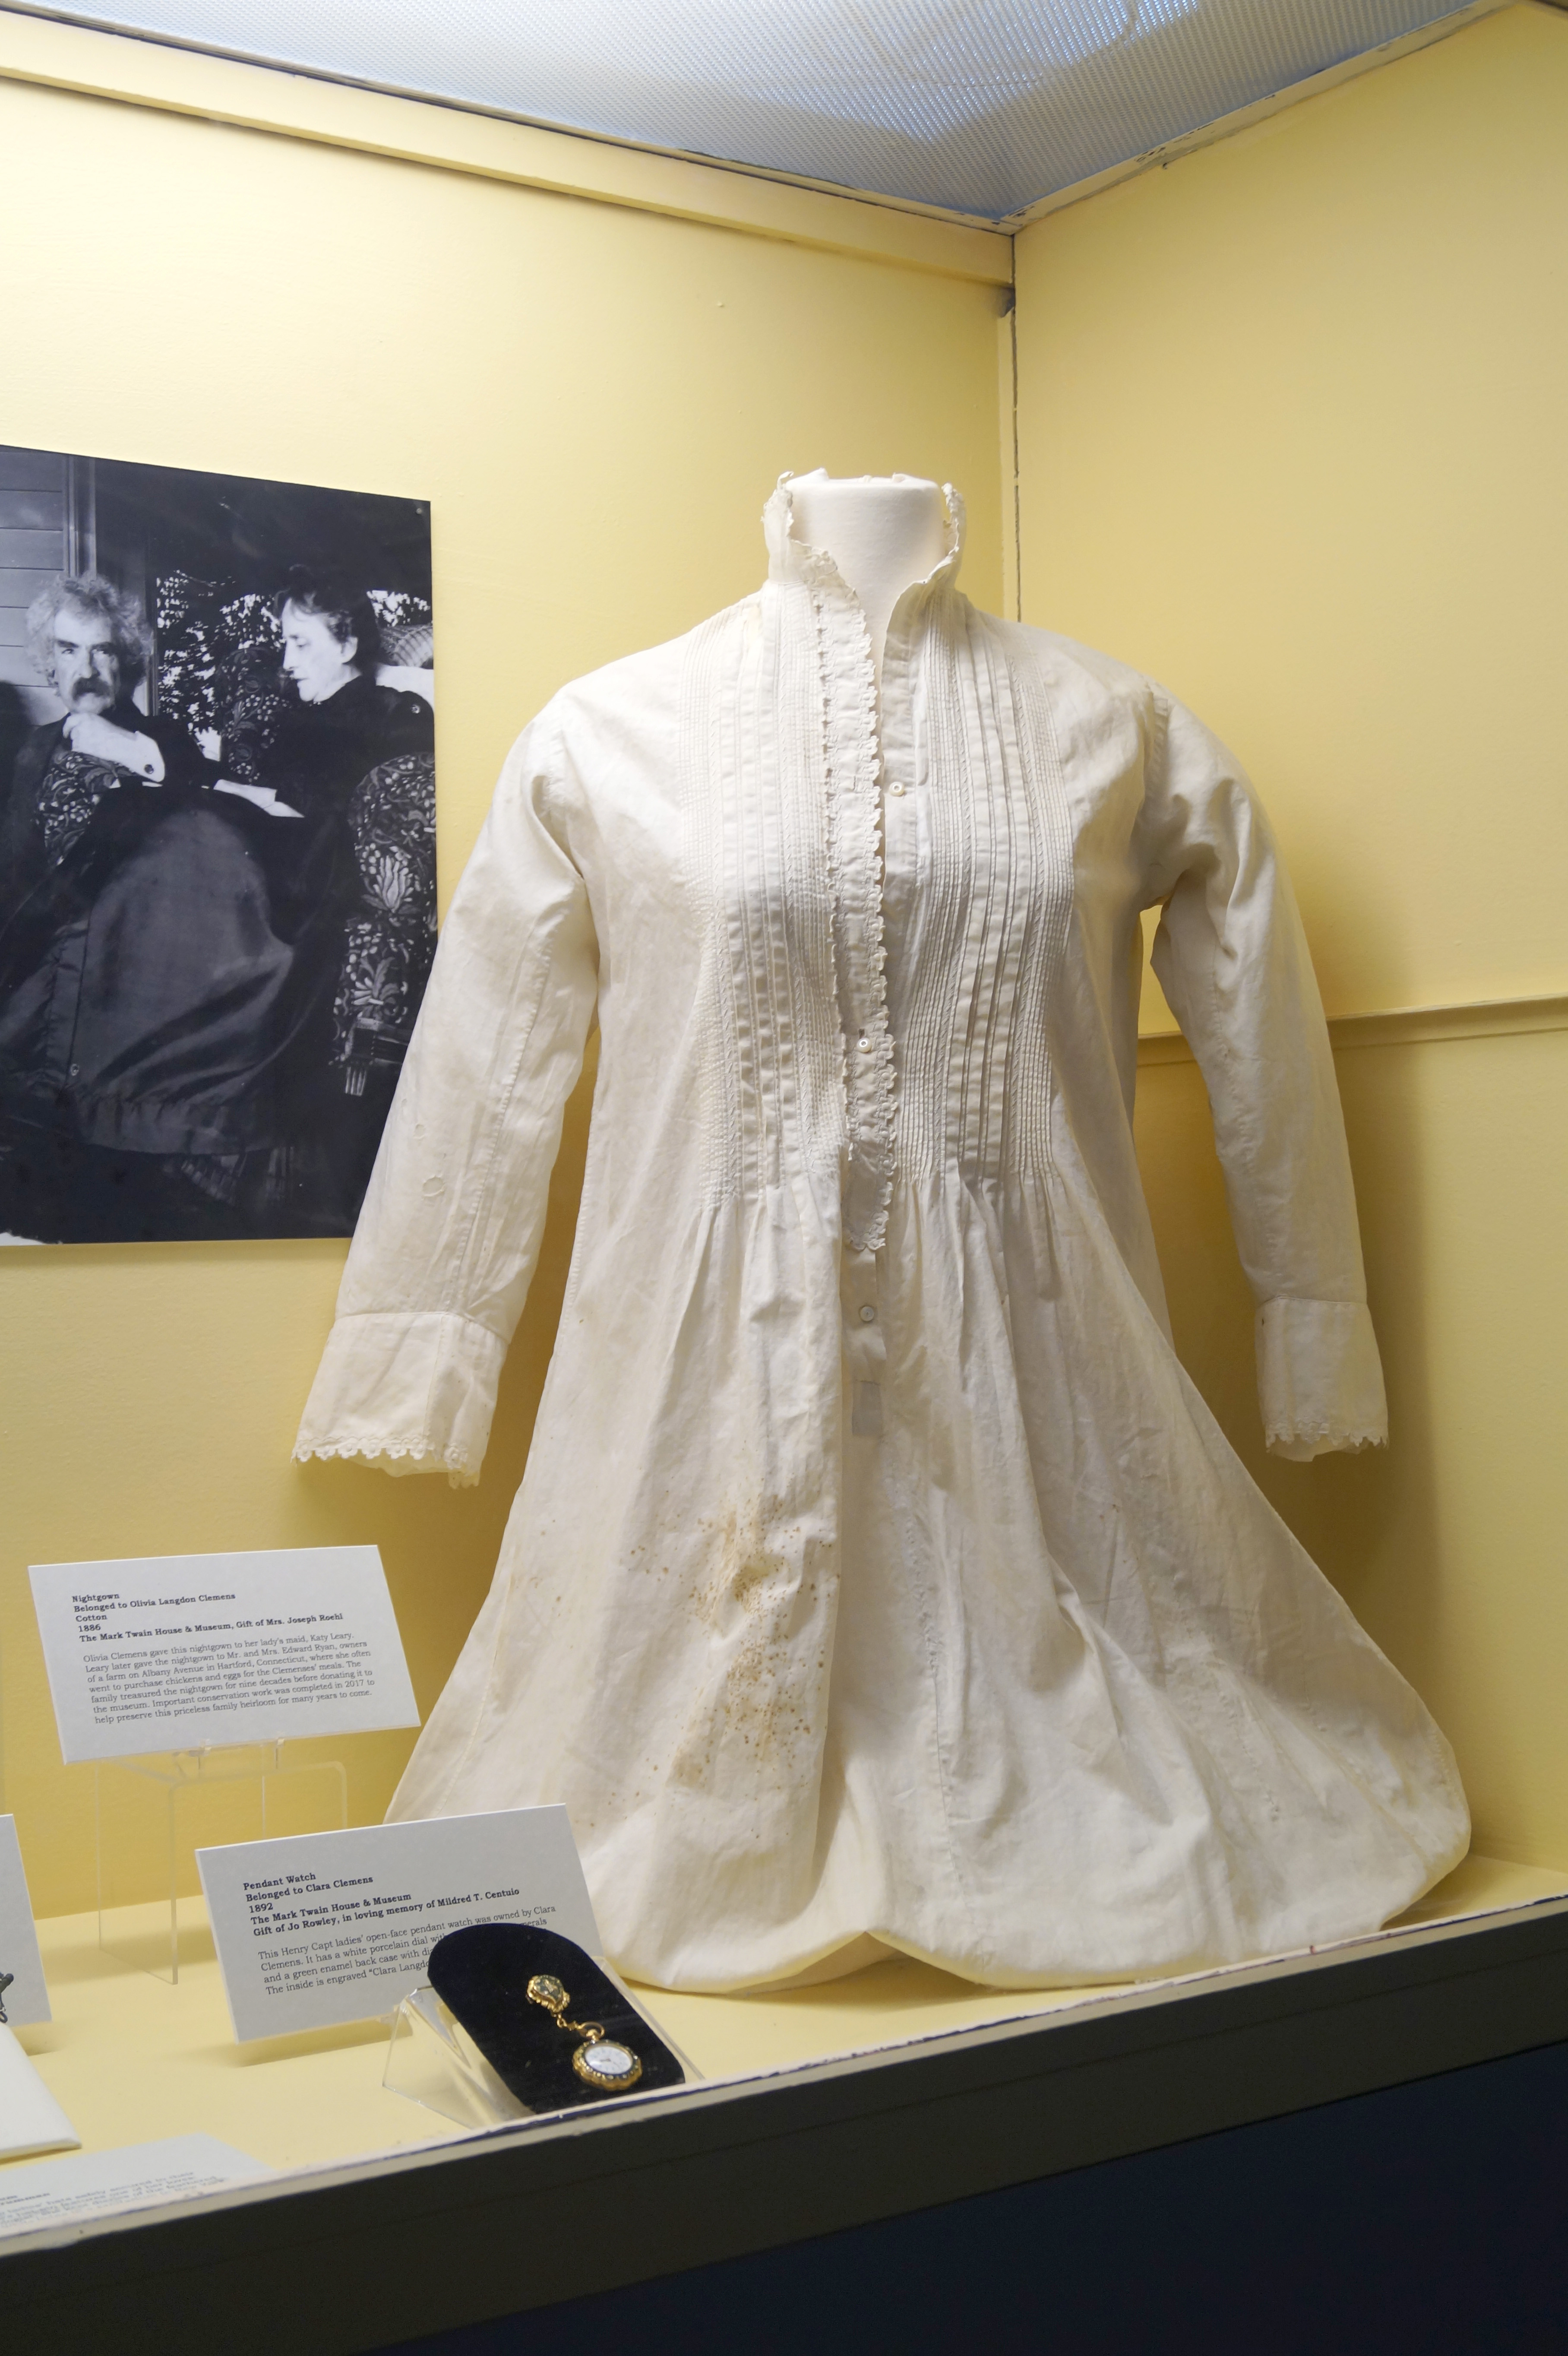 Olivia Clements gave this nightgown to her lady's maid, Katy Leary.  Leary later gave the nightgown to Mr. and Mrs. Edward Ryan, owners of a farm on Albany Avenue in Hartford, Connecticut, where she often went to purchase chickens and eggs for the Clemenses' meals.  The family treasured the nightgown for nine decades before donating it to the museum.  Important conservation work was completed in 2017 to help preserve this priceless family heirloom for many years to come.